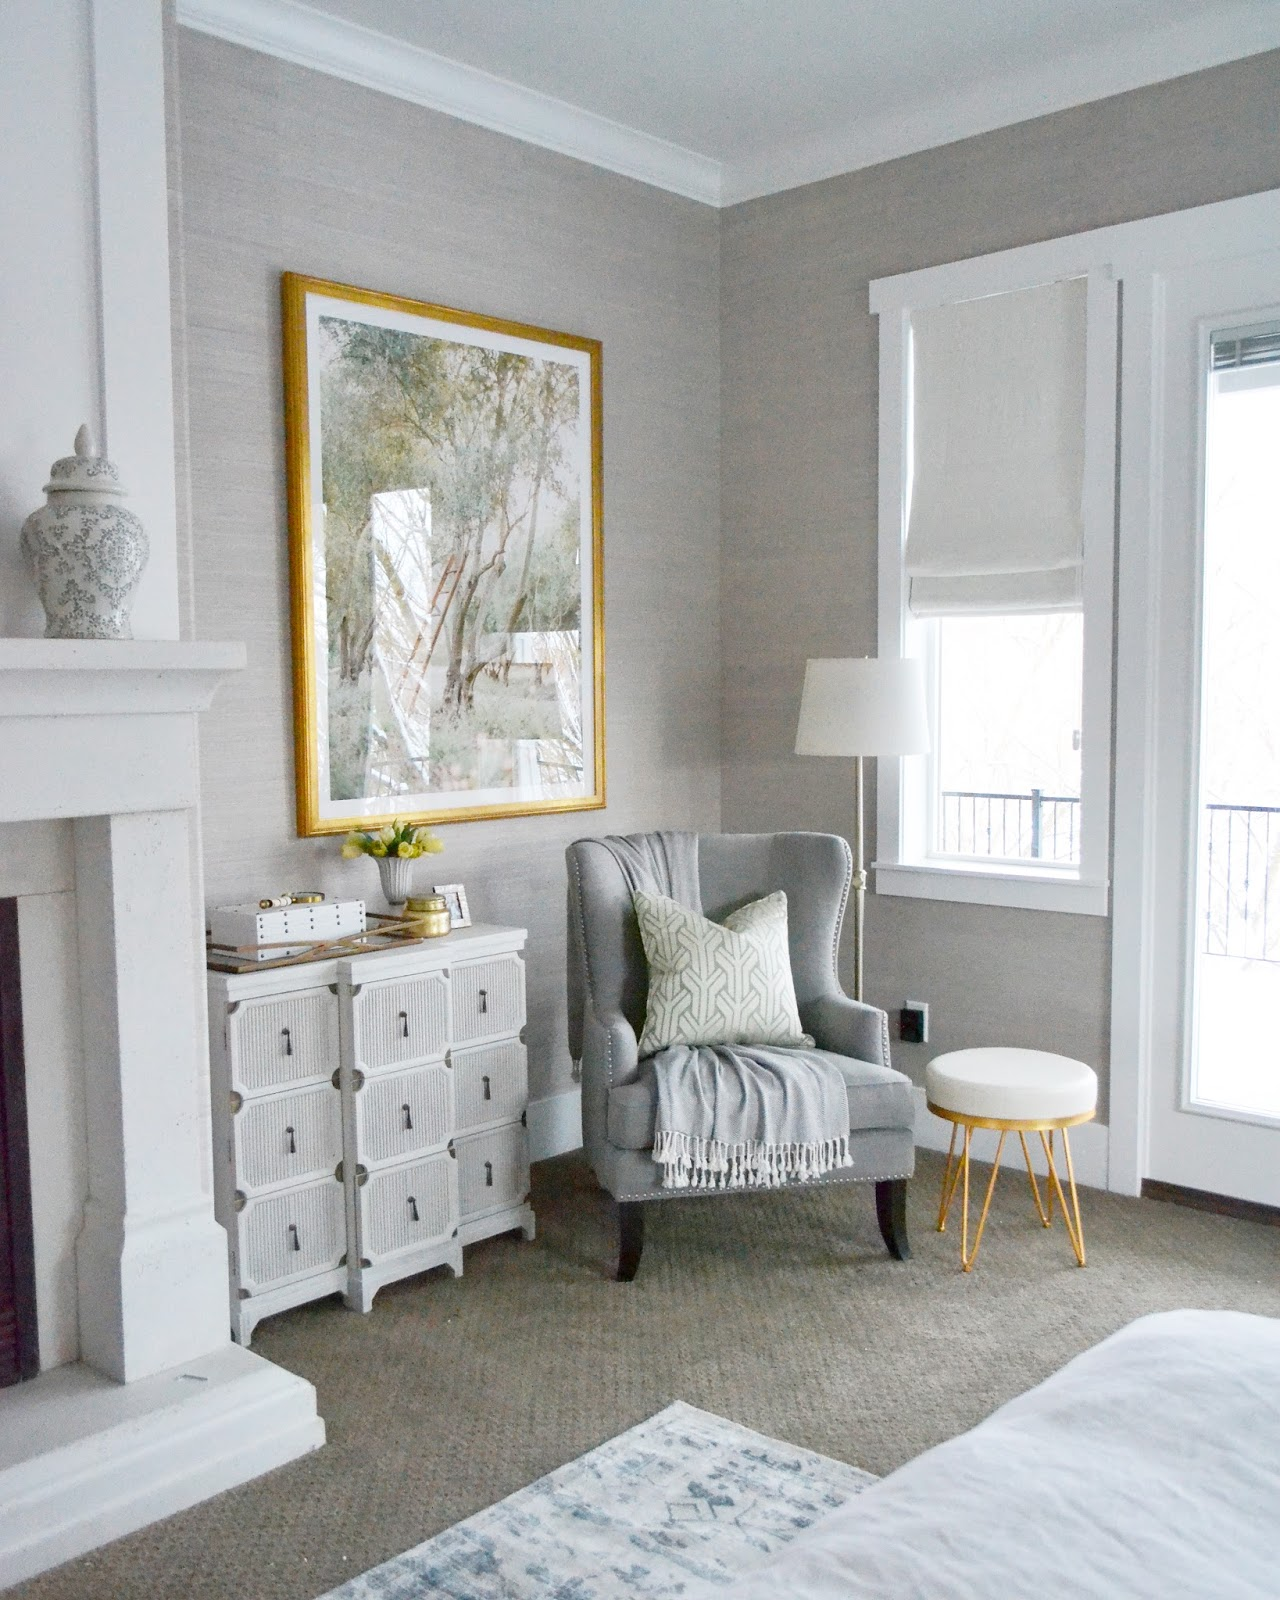 Rooms With Grasscloth Wallpaper: Sita Montgomery Interiors